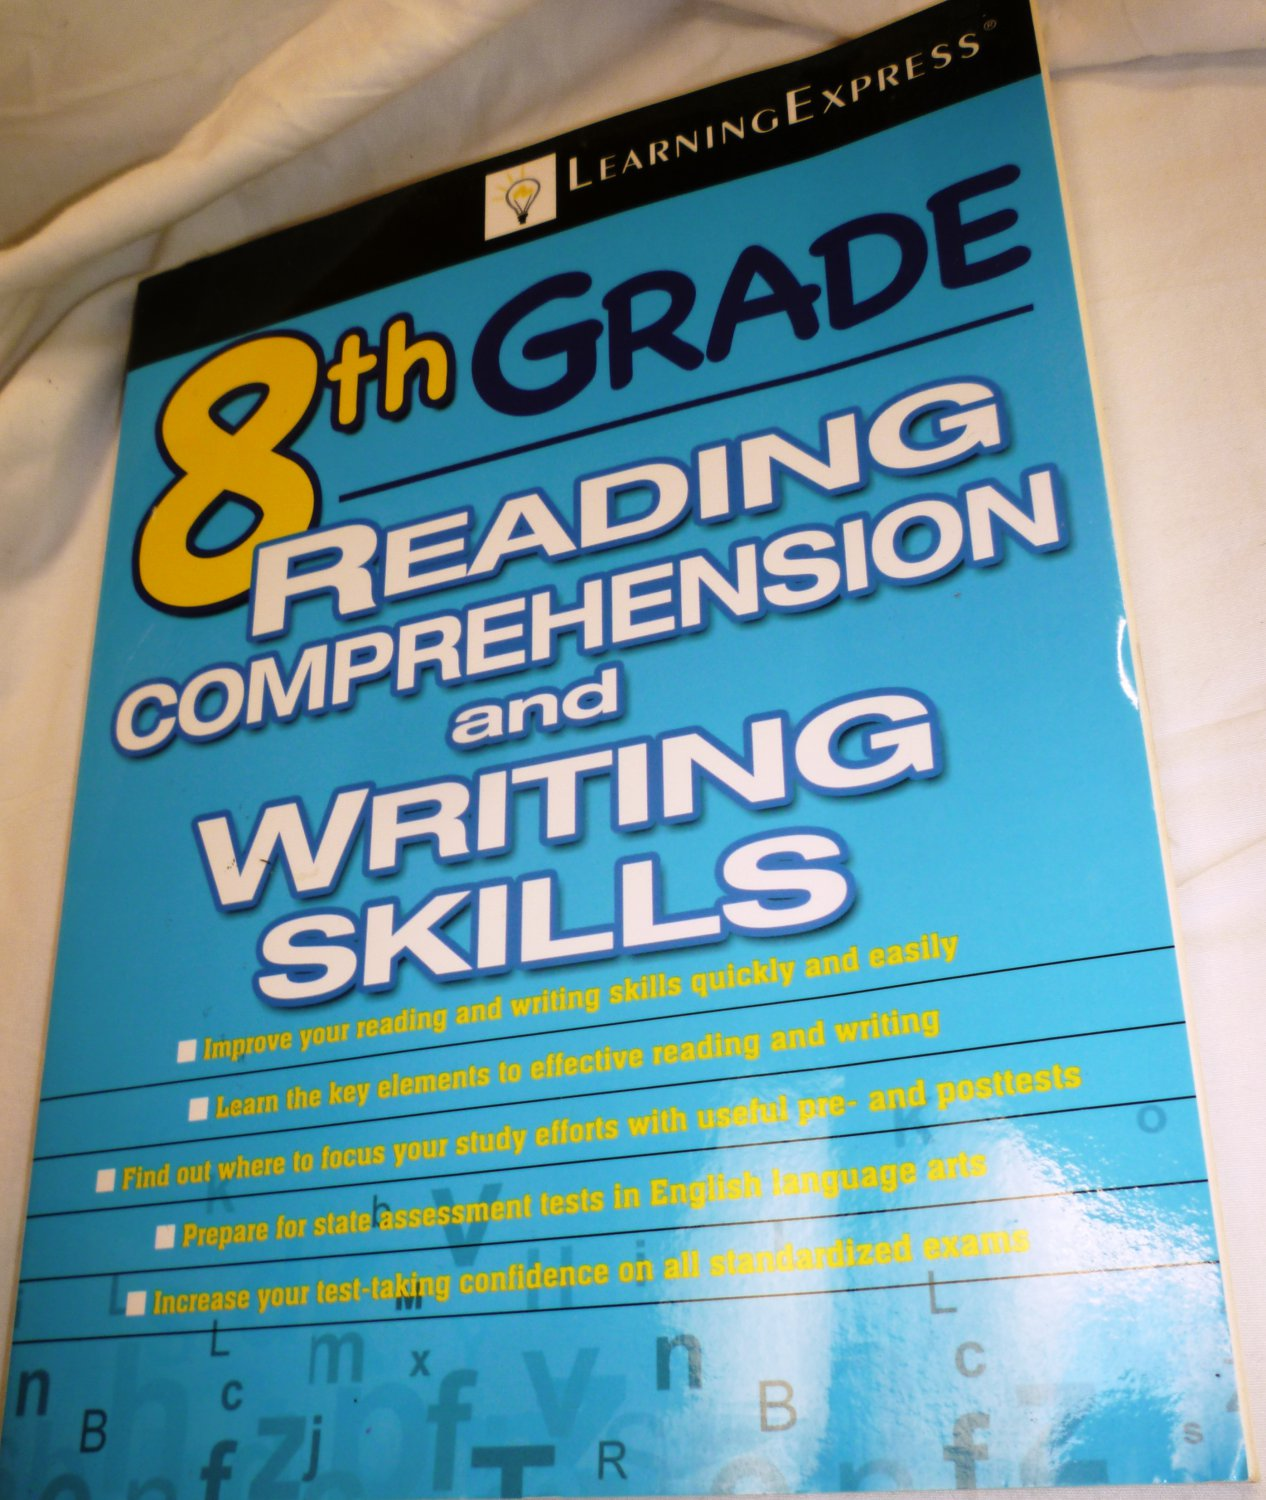 8TH GRADE READING COMPREHENSION AND WRITING SKILLS BY LEARNING EXPRESS